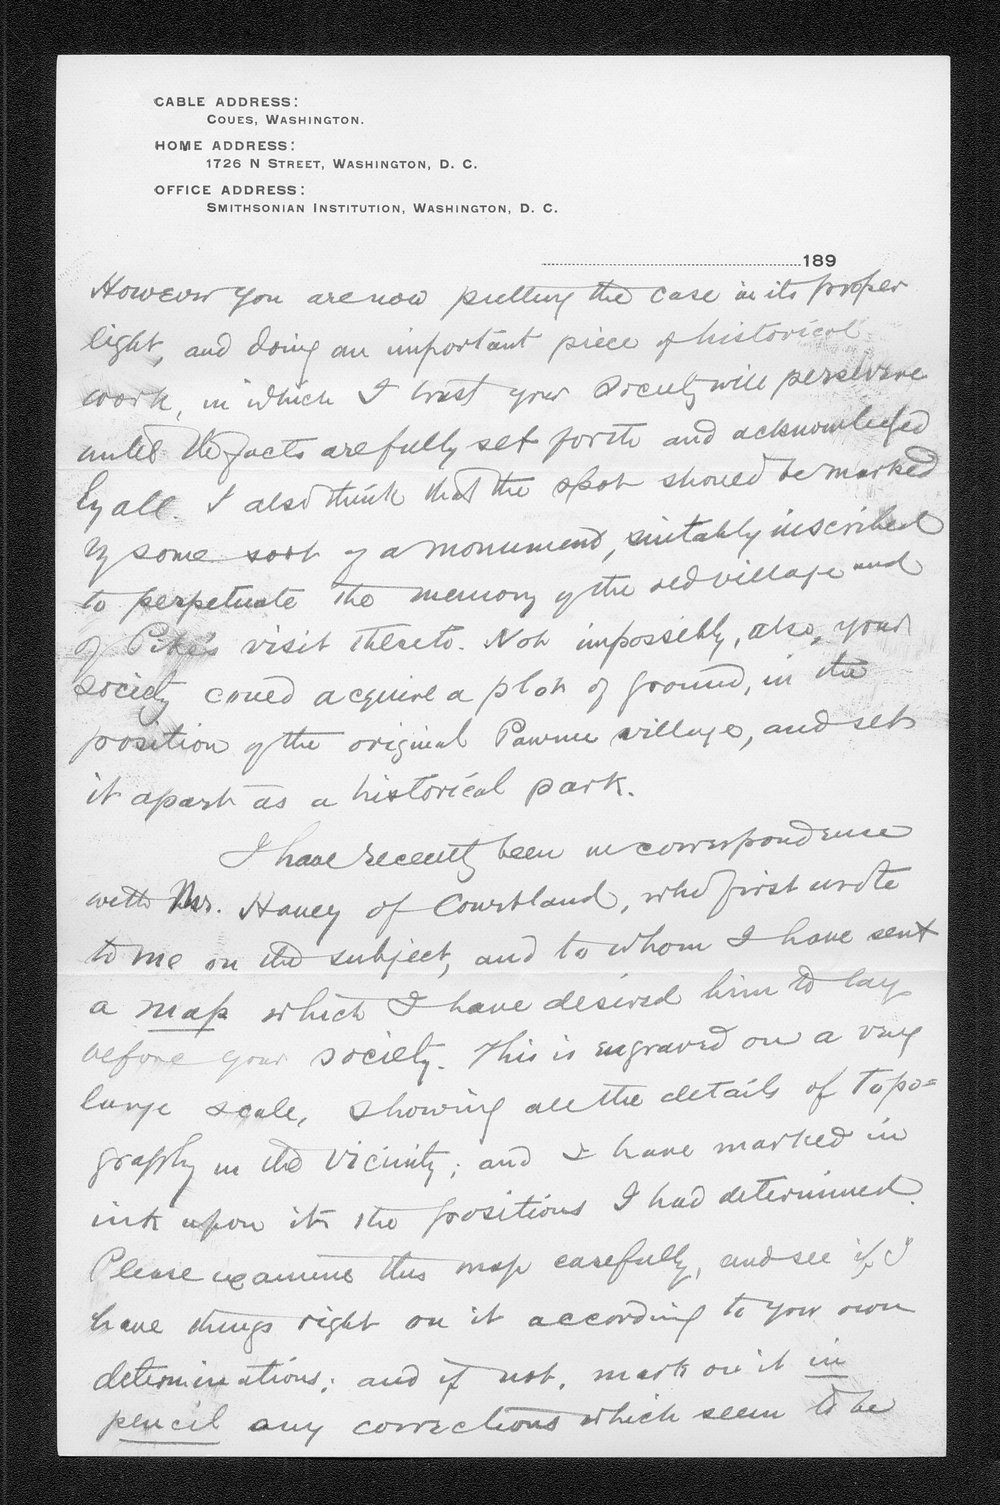 Zebulon Pike trip and Pawnee Indian Village correspondence - 10